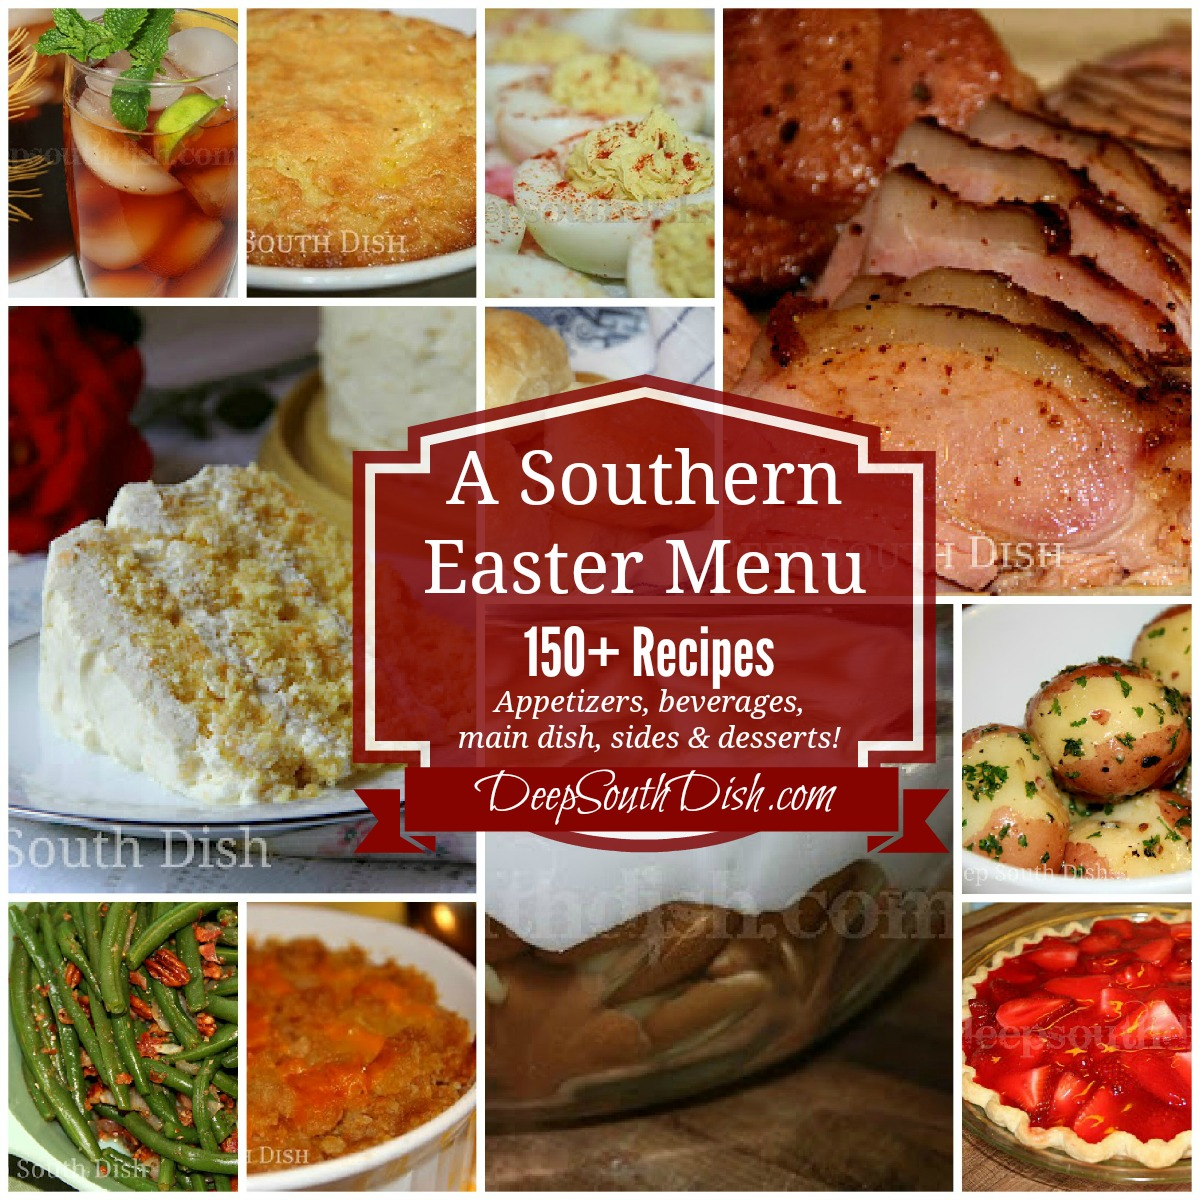 deep south dish southern easter menu ideas and recipes